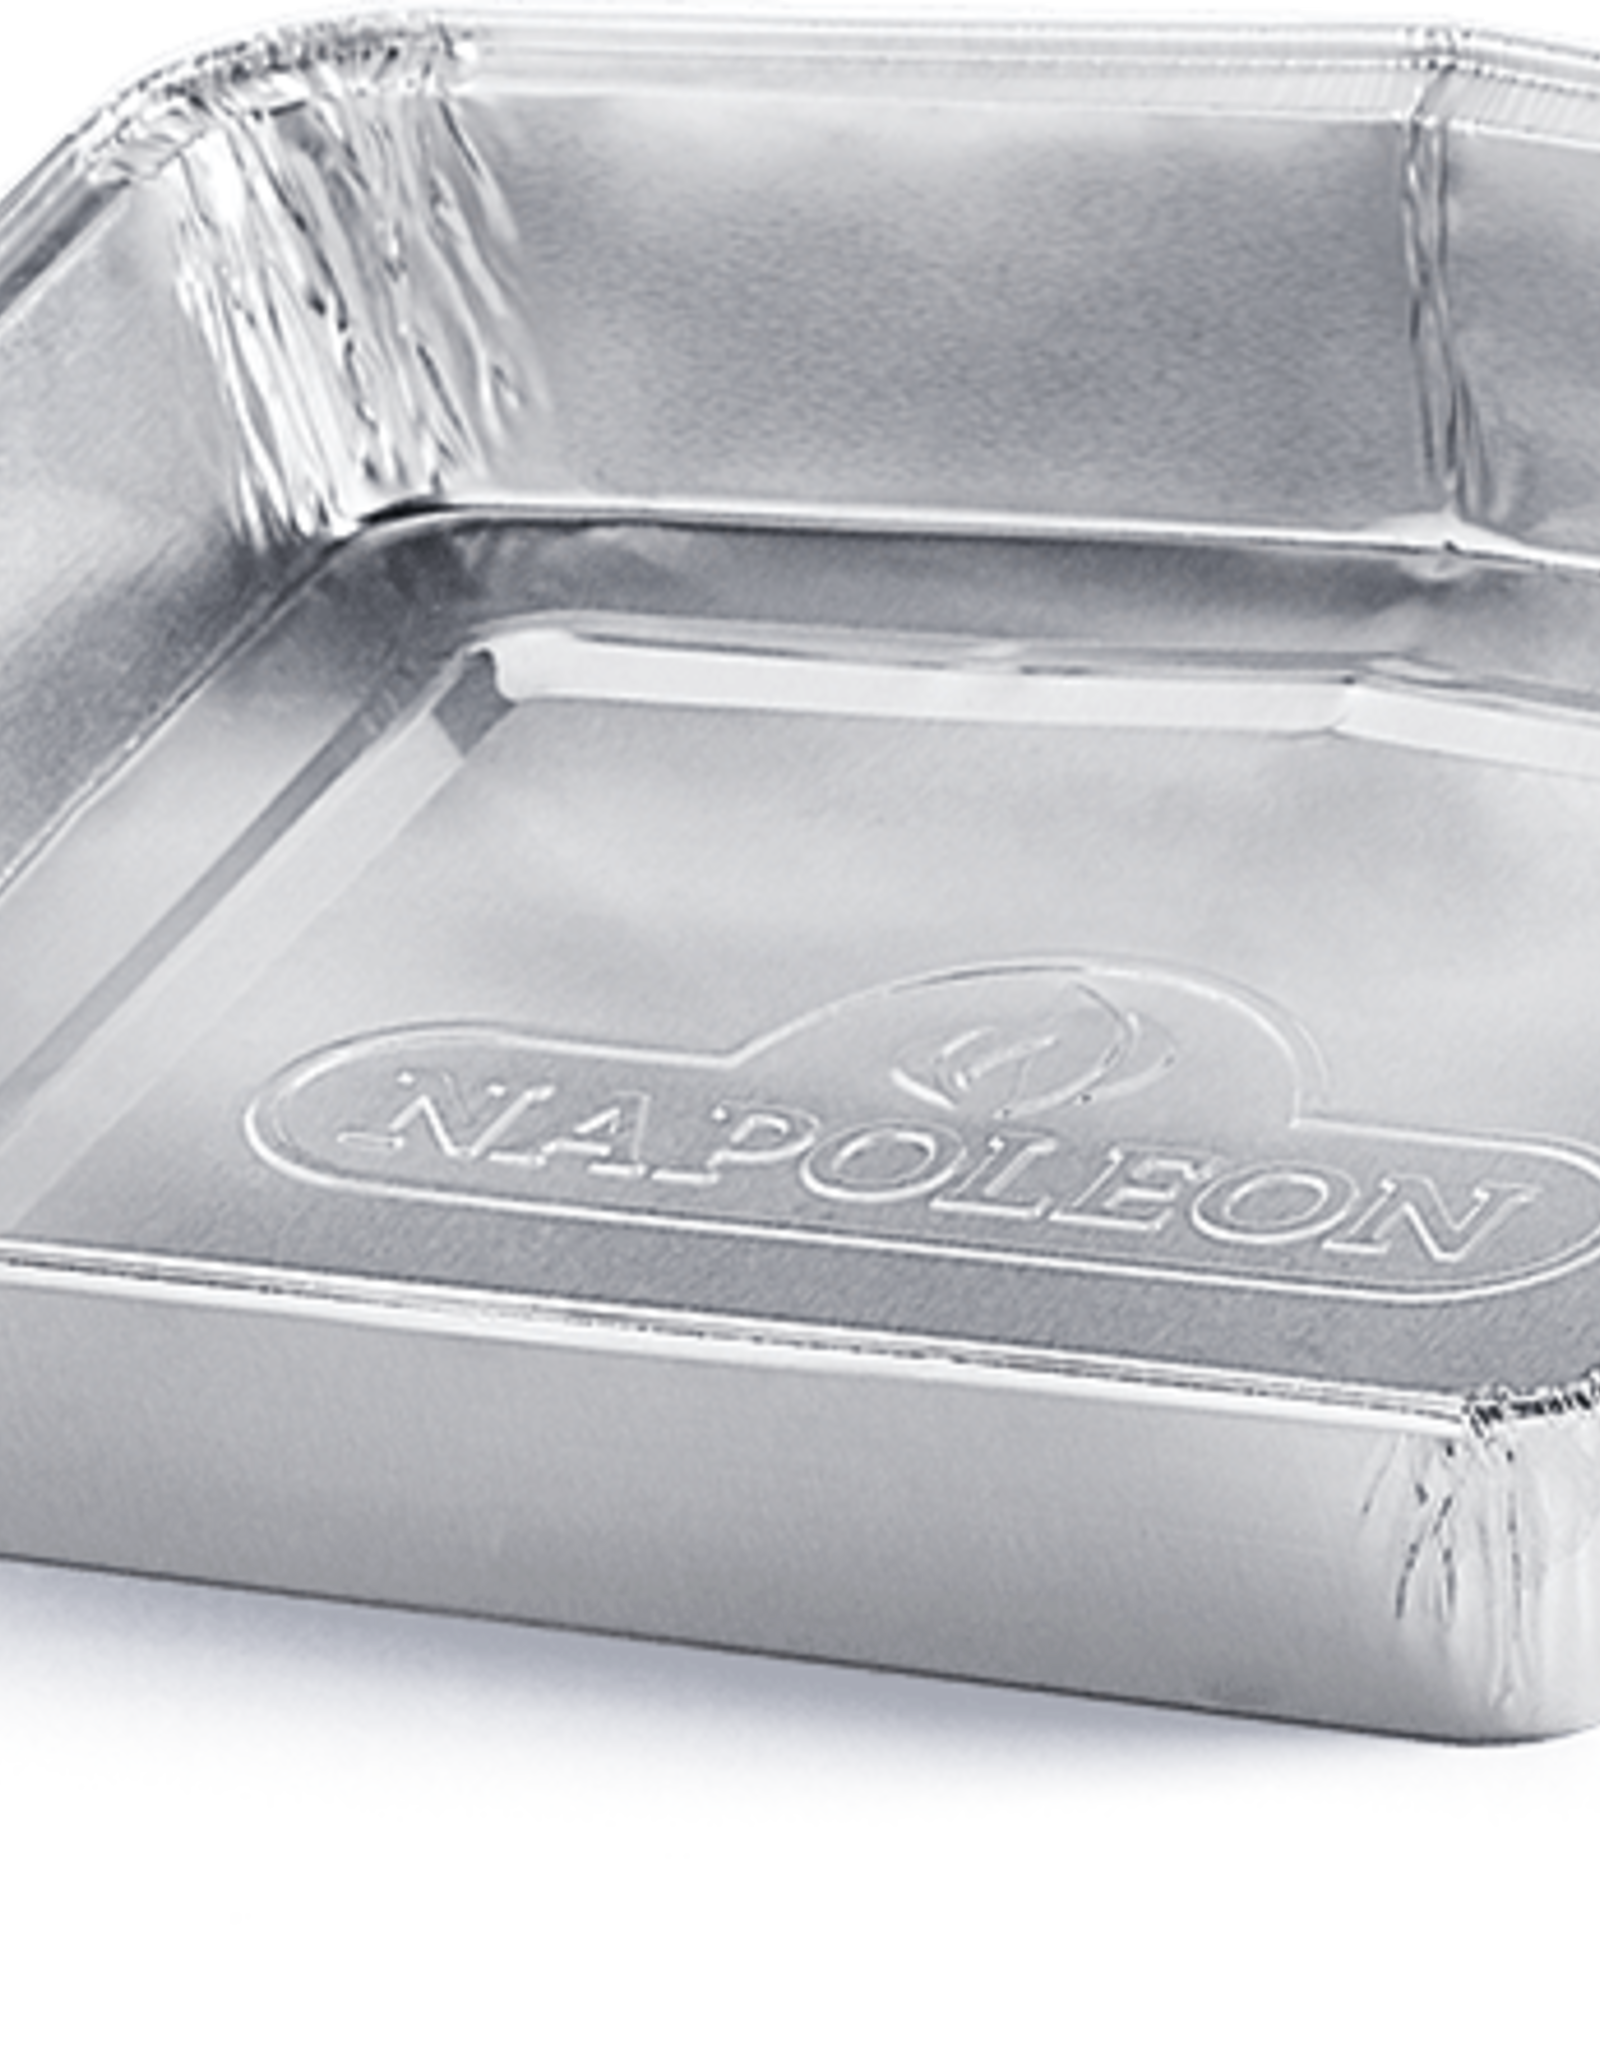 Napoleon Napoleon Disposable Aluminum Grease Trays for TravelQ™ Series (Pack of 5) - 62006